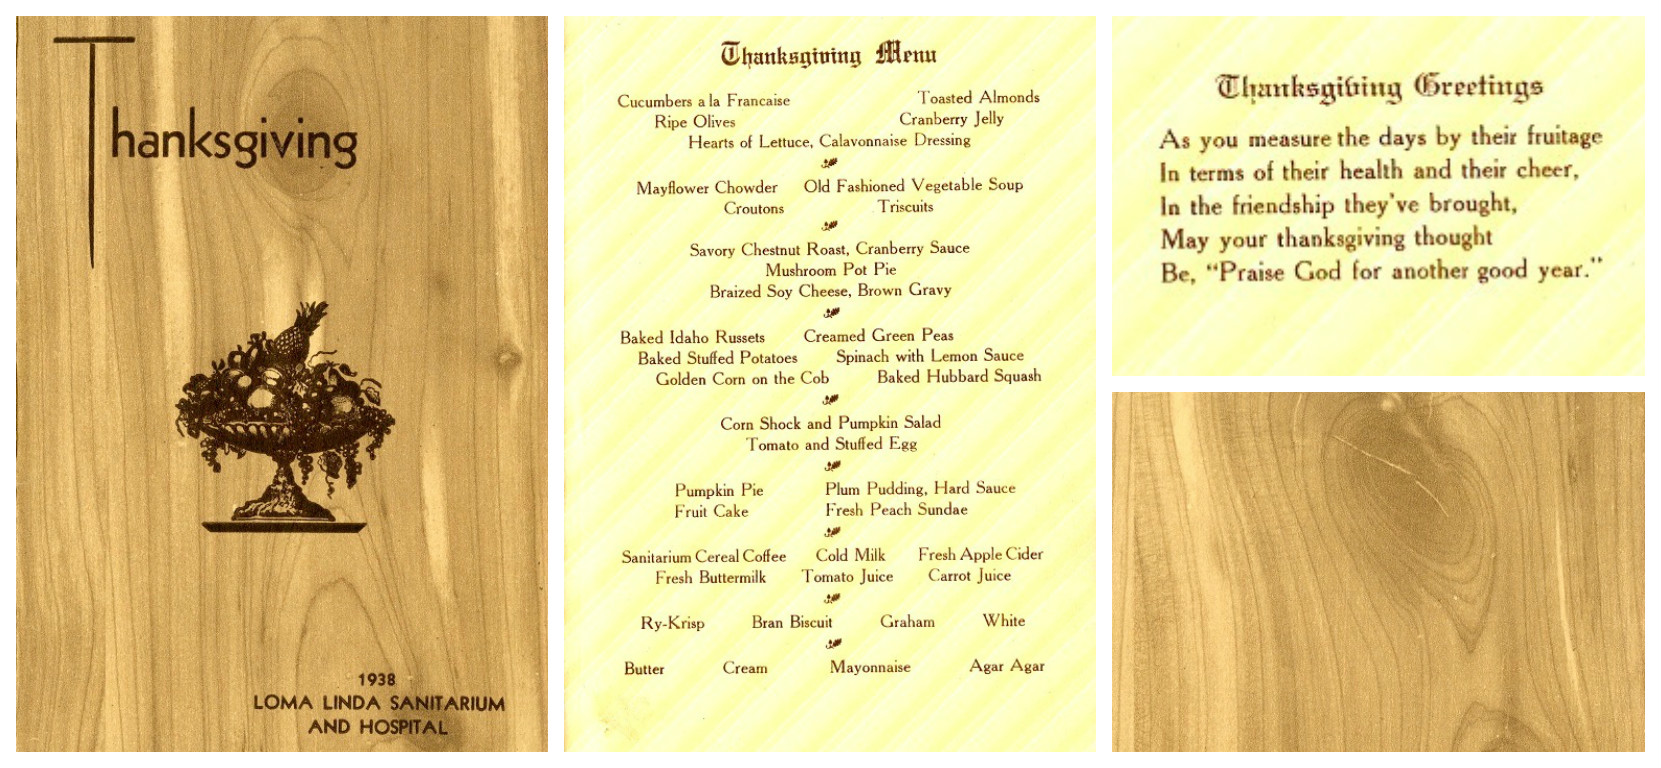 Thanksgiving dinner menu, 1938. Menu is printed on separate sheet of paper affixed to inside of card-stock folder